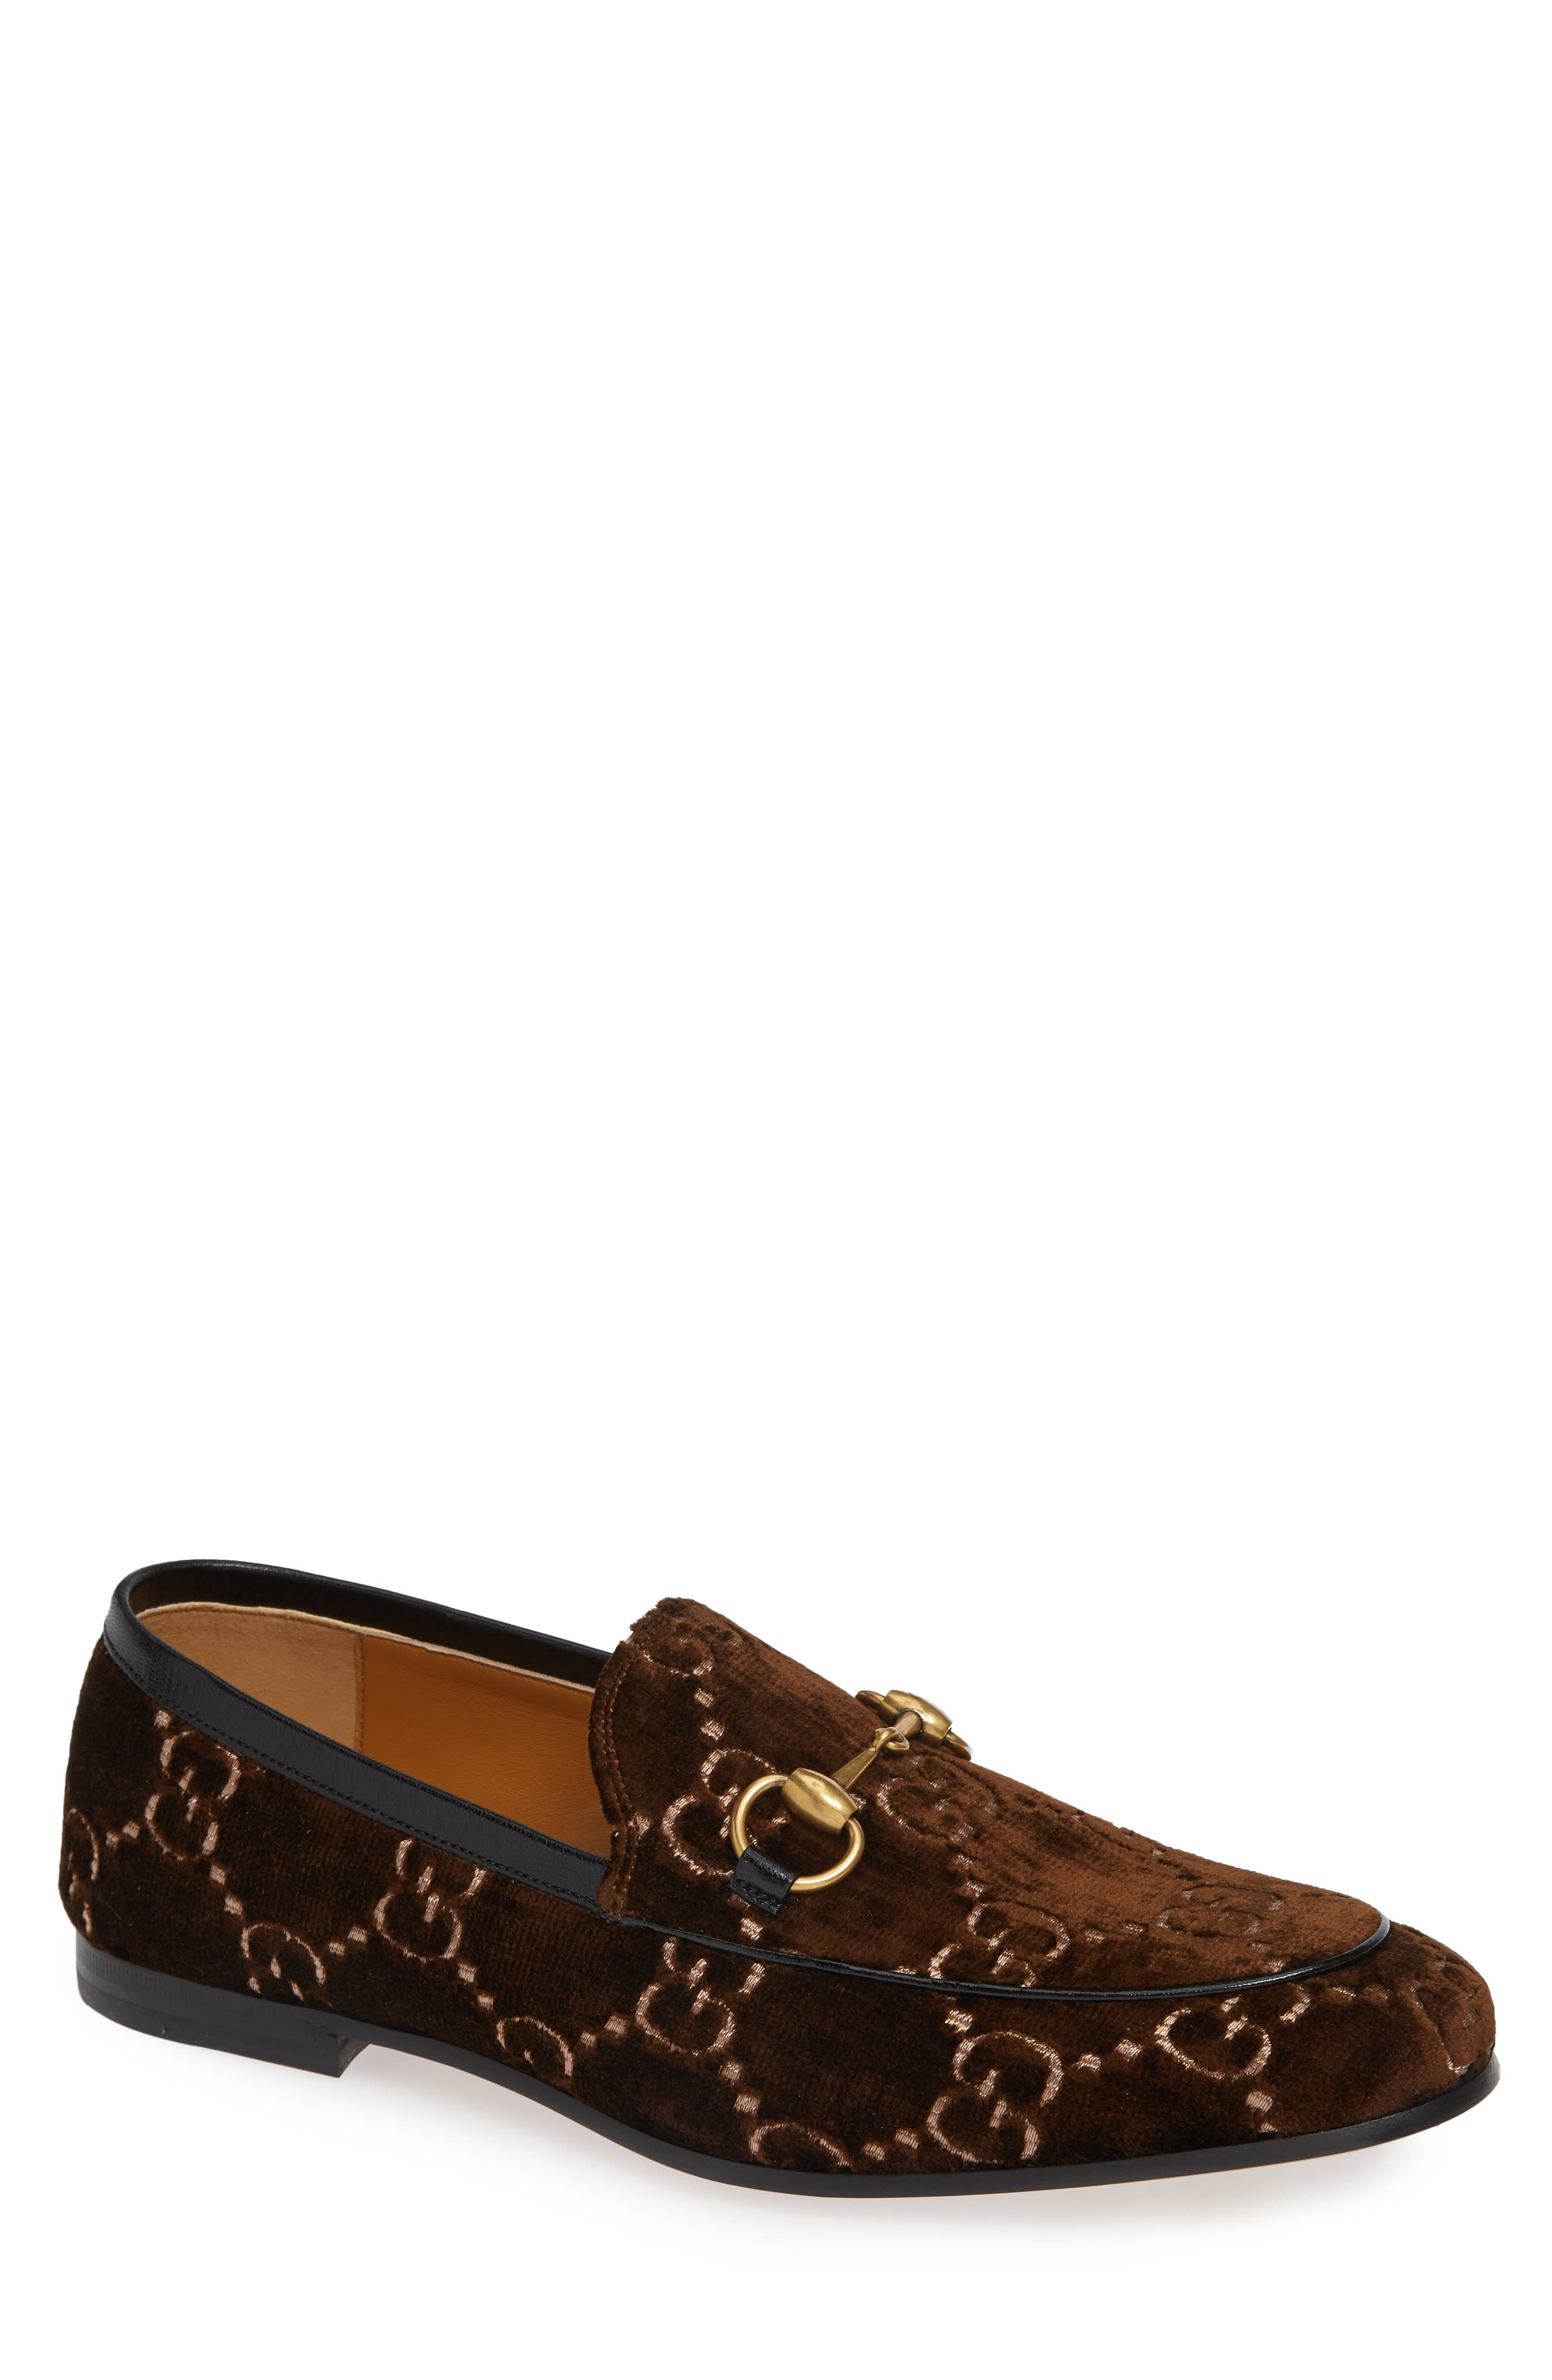 Jordaan GG Velvet Loafer,                             Main thumbnail 1, color,                             BROWN/ NERO